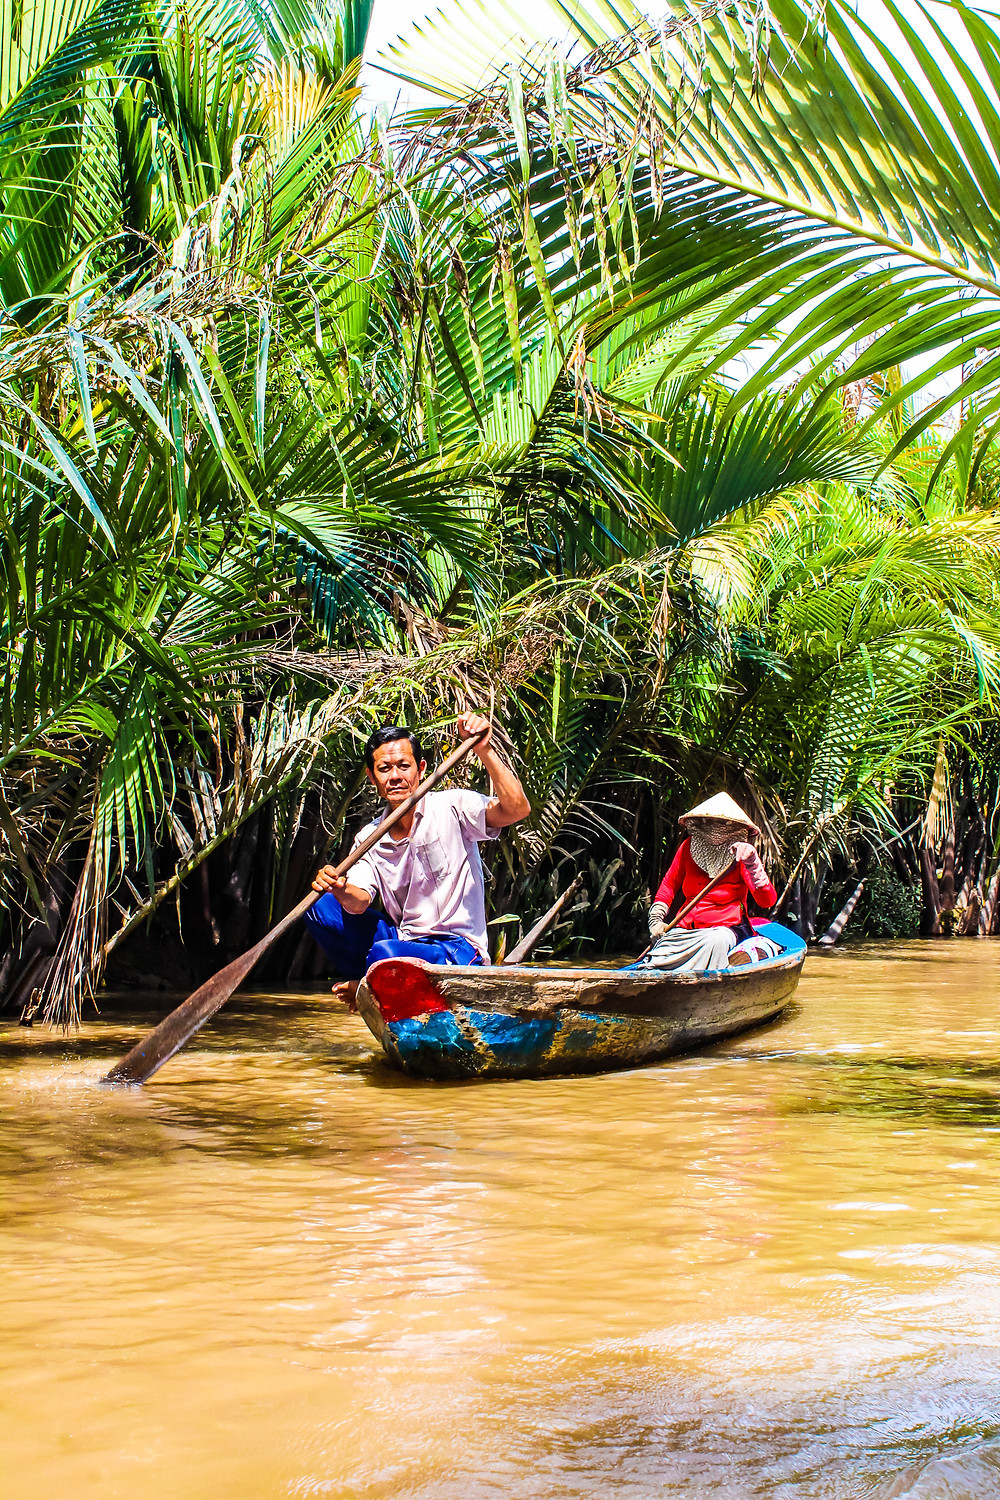 mekong delta, day trips from ho chi Minh city, things to do in ho chi Minh city, ho chi Minh city tours